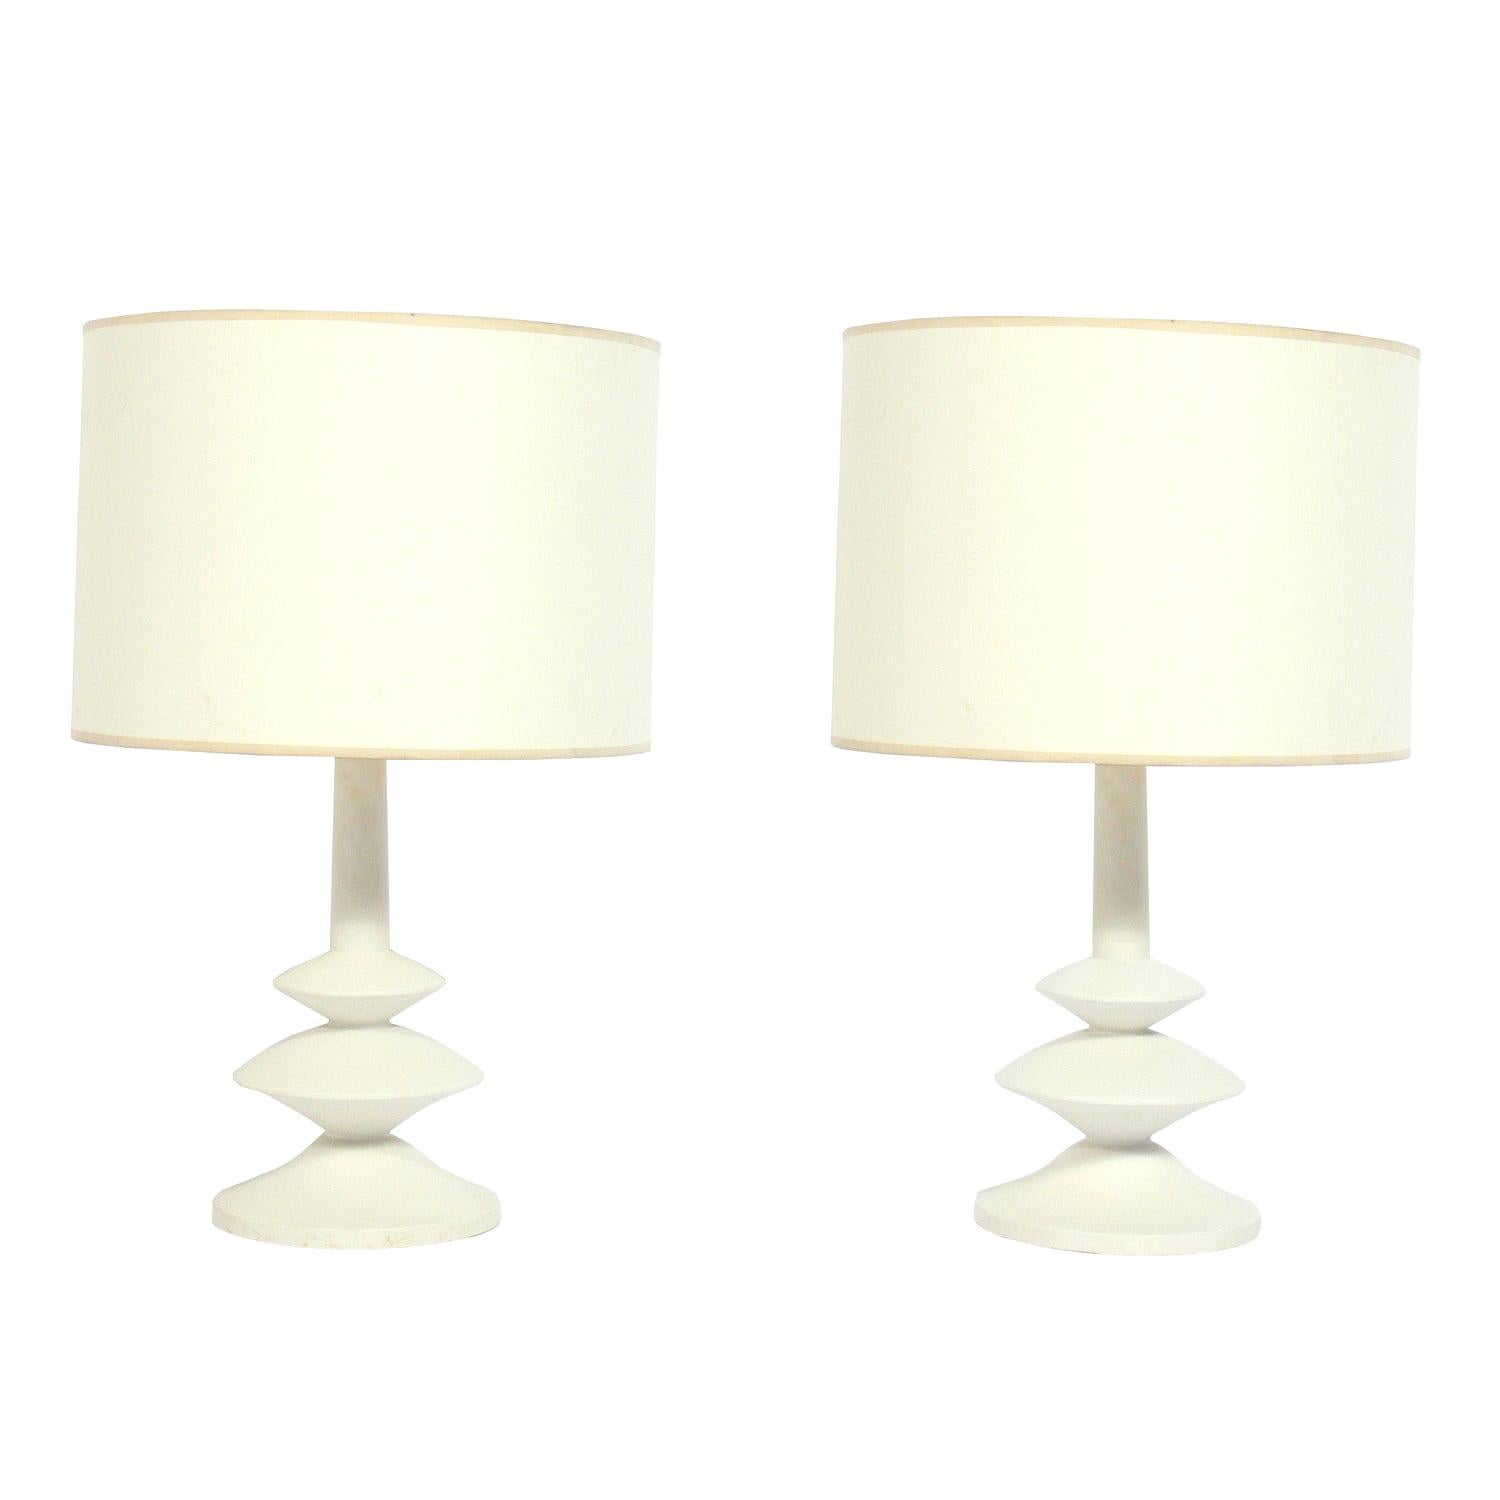 Pair of Giacometti for JMF Style Lamps by Sirmos, circa 1960s